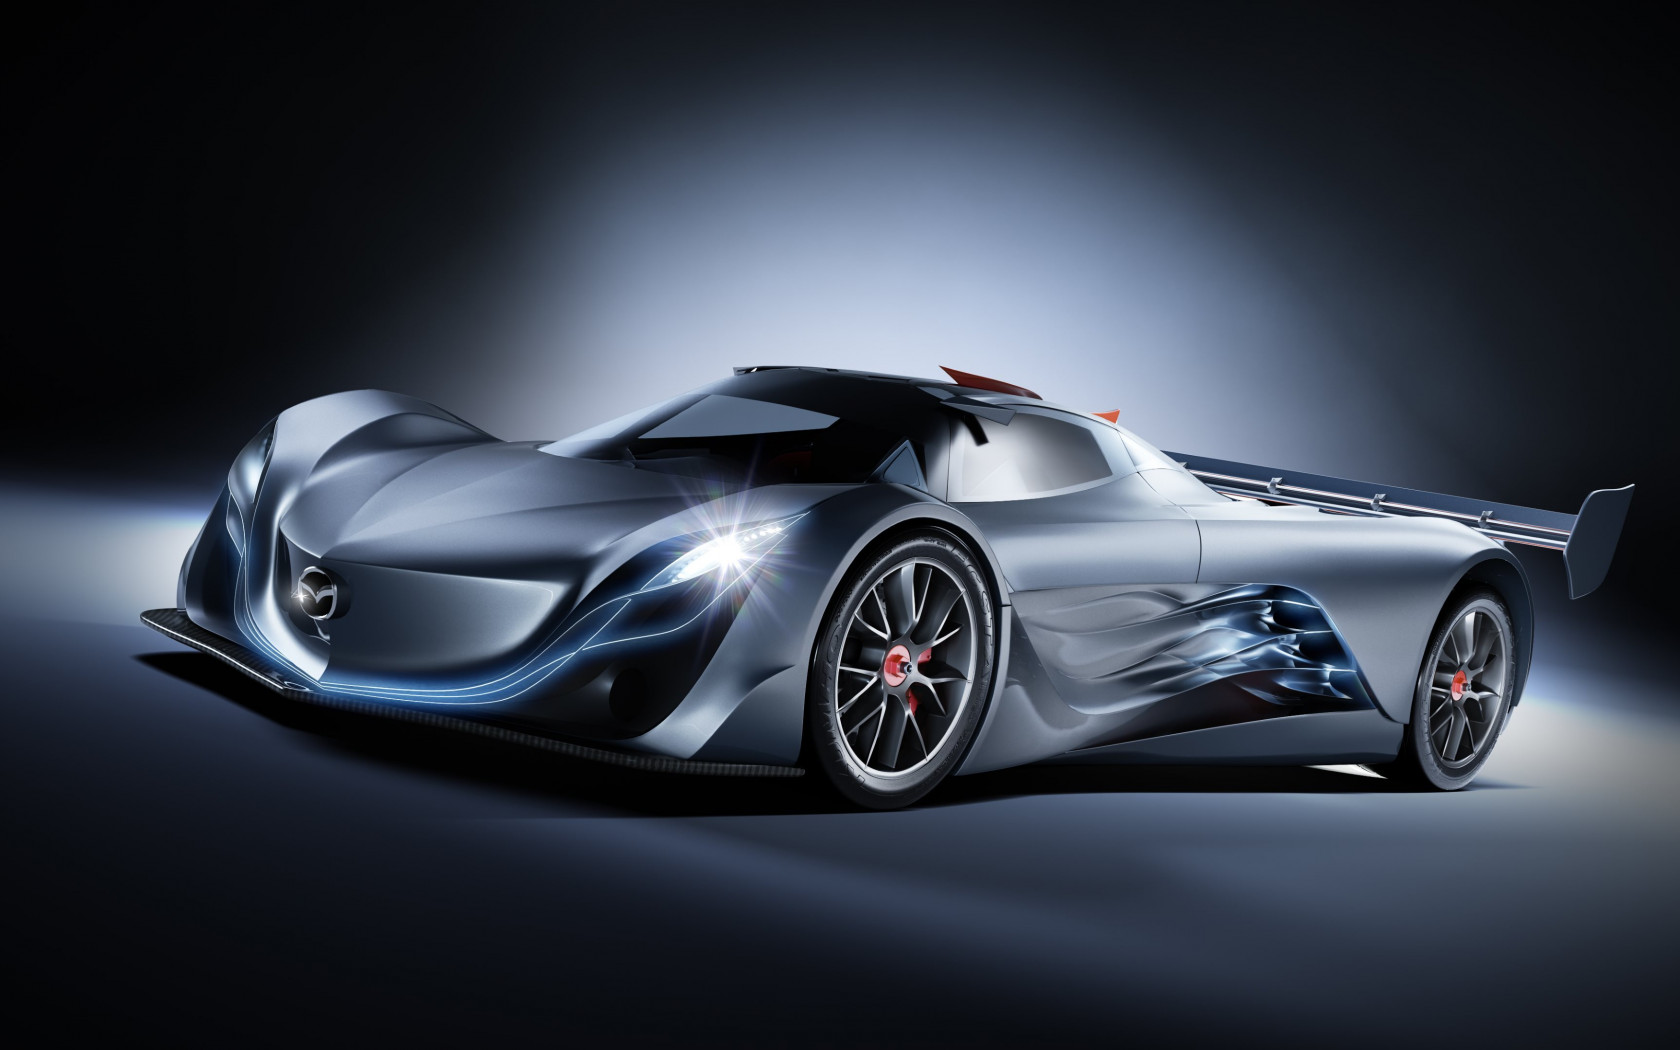 Mazda Furai wallpaper 1680x1050